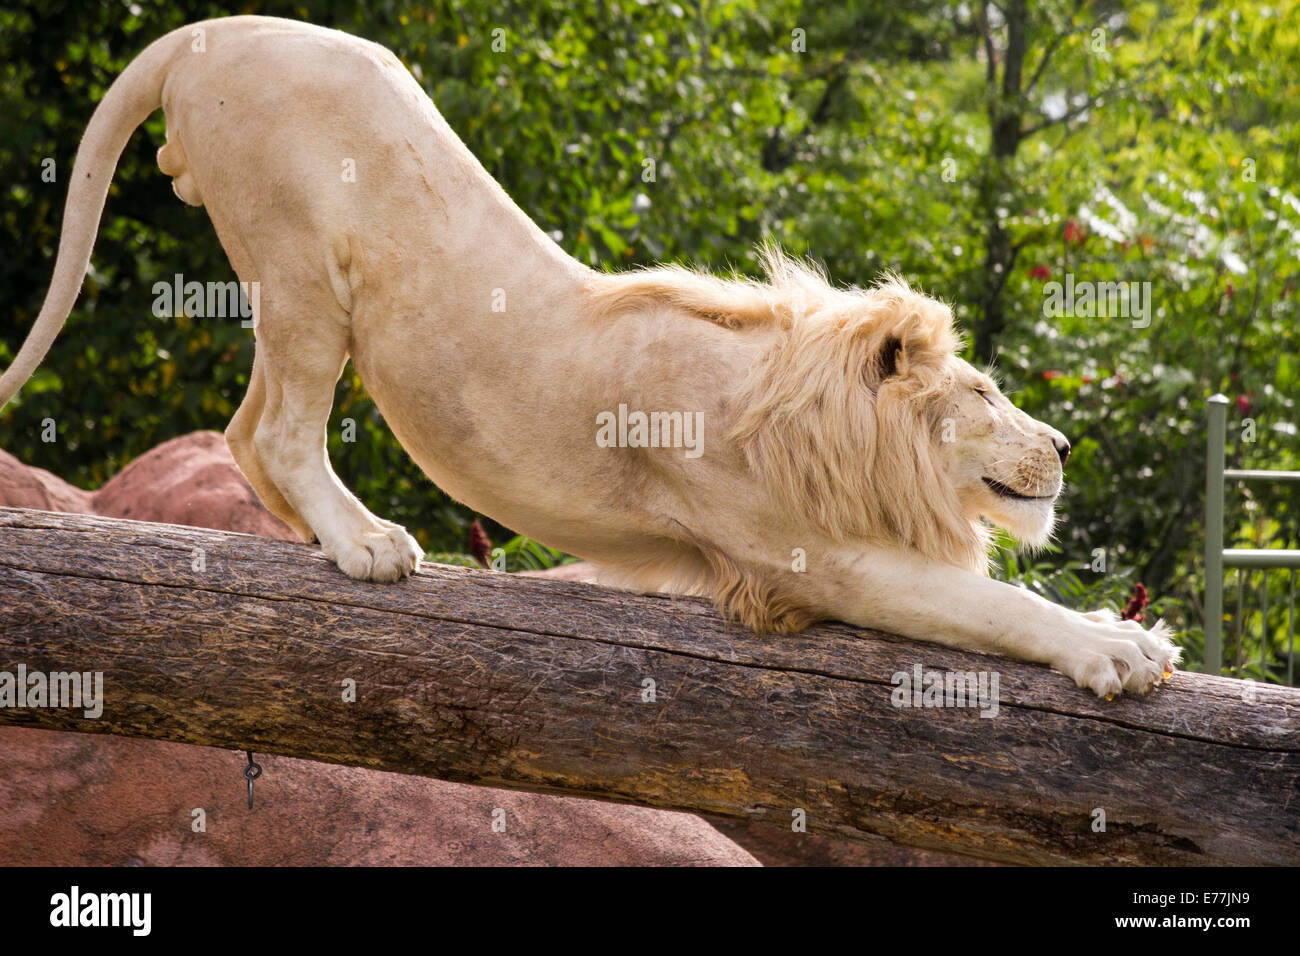 white-lion-stretching-and-smiling-on-a-log-at-the-toronto-zoo-E77JN9.jpg